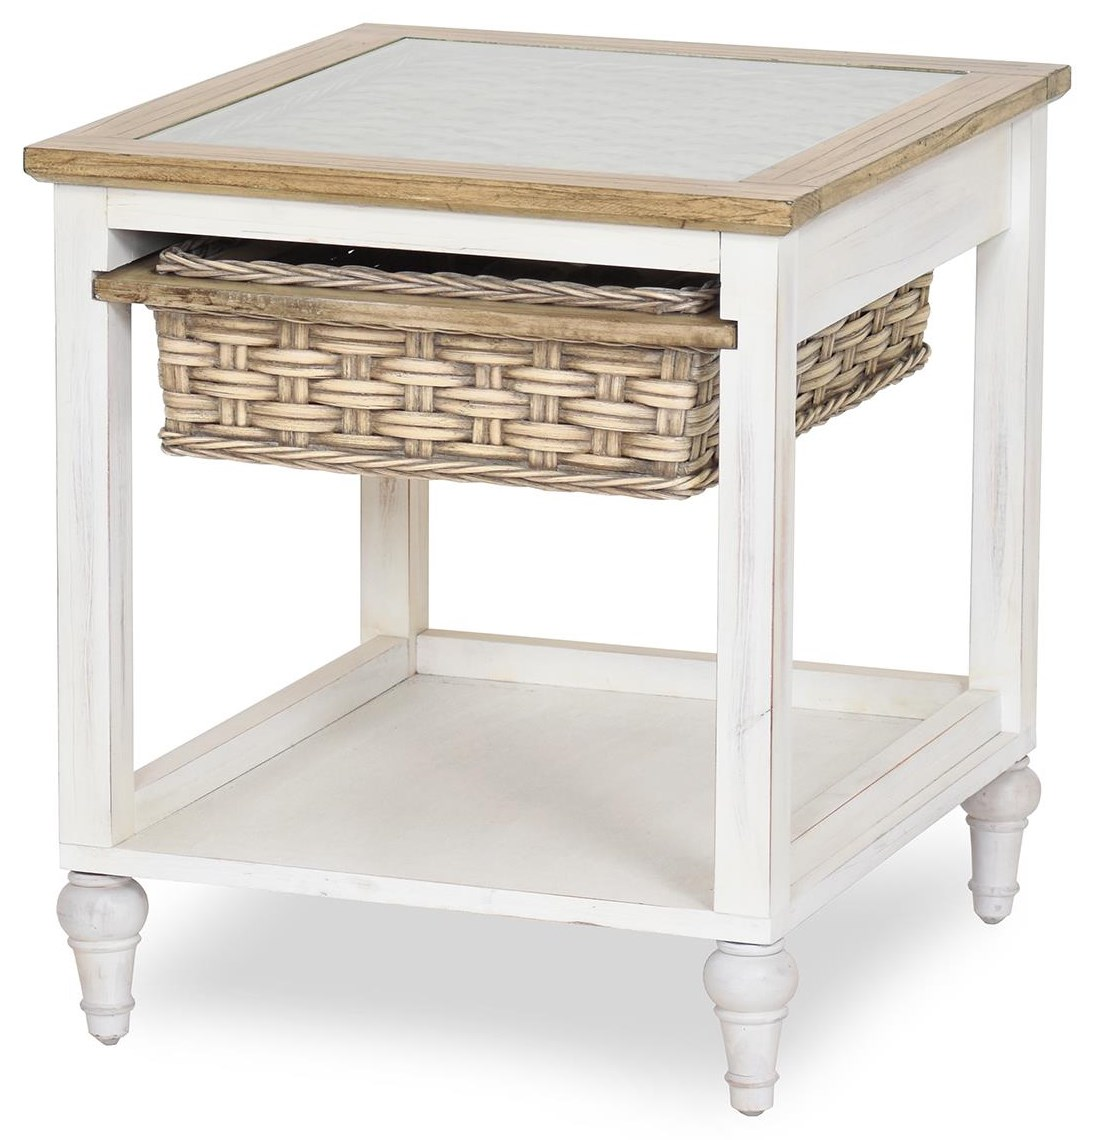 island breeze end table by Sea Winds Trading Company at Johnny Janosik